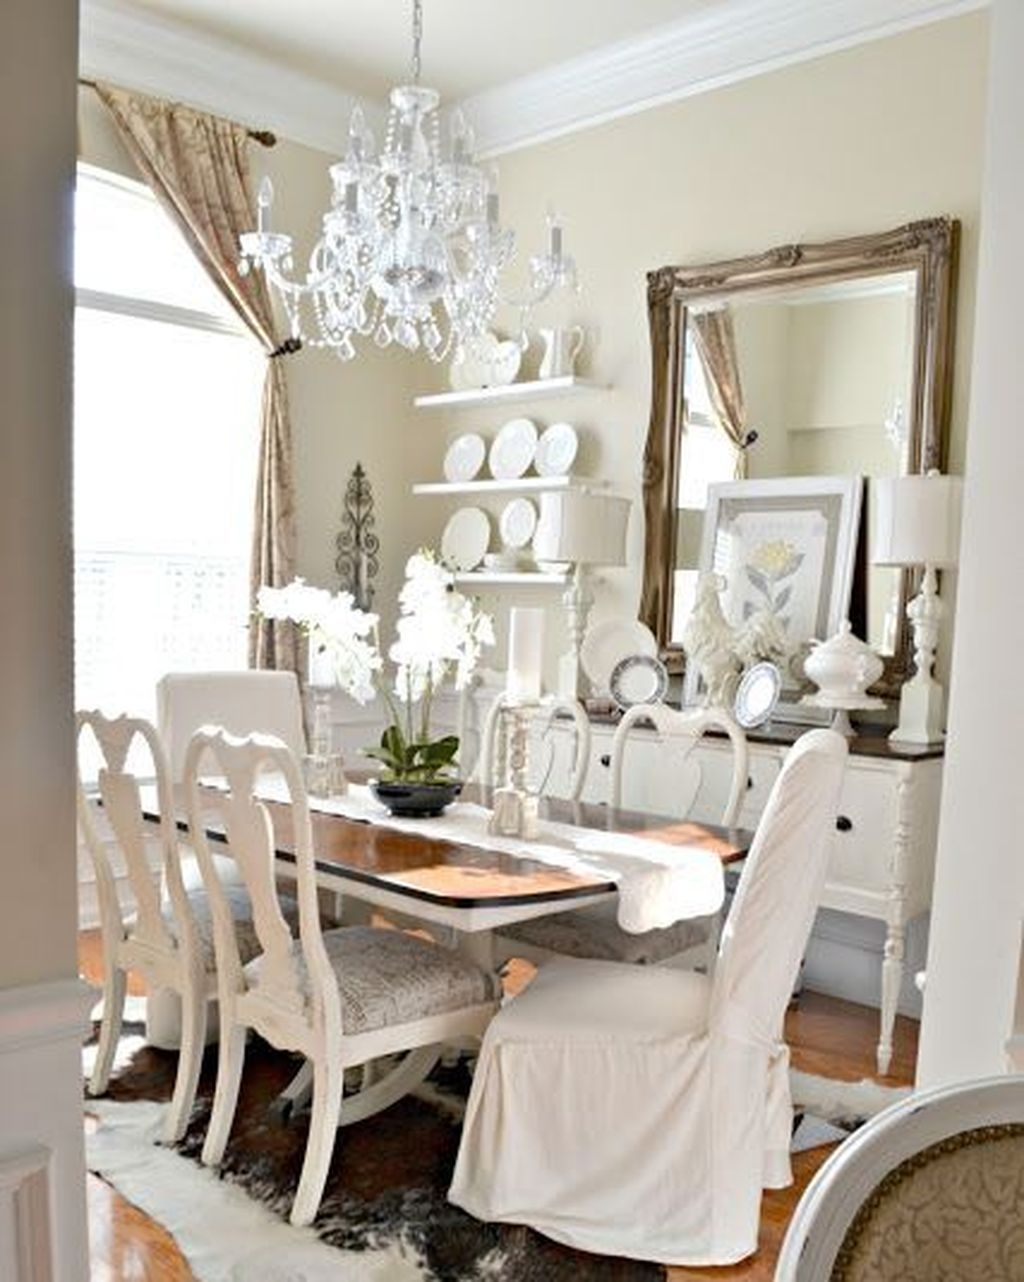 Decorative Mirror Table Awesome 49 Stylish Large Decorative Mirrors Ideas For Dining